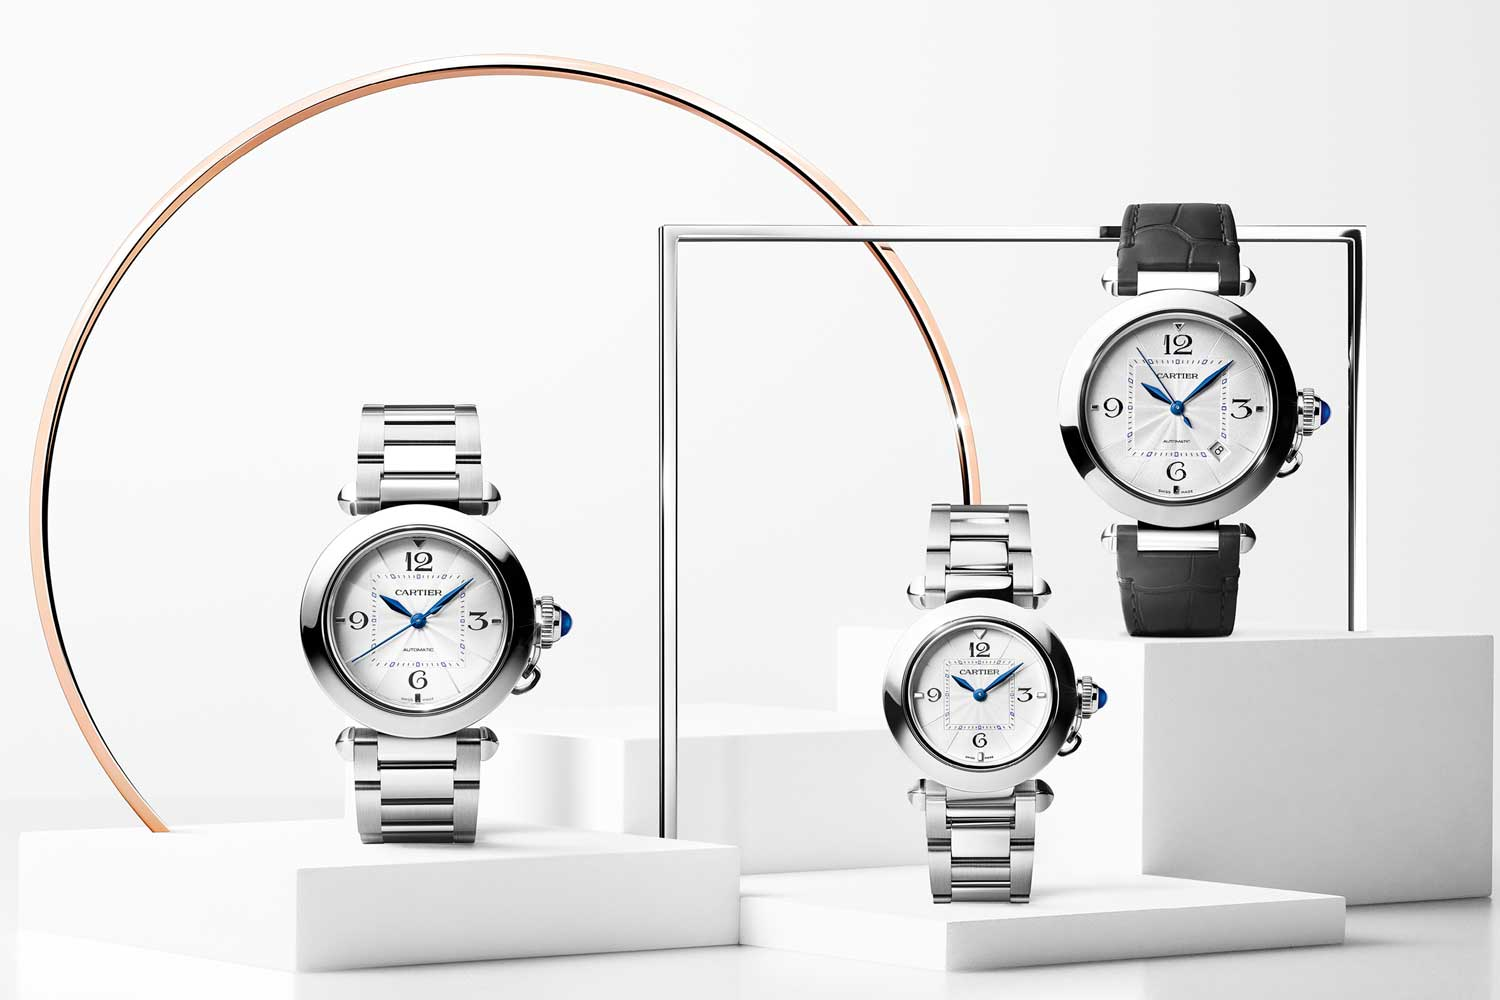 The bracelet on the steel models can easily be swapped out for a leather strap using Cartier's QuickSwitch mechanism